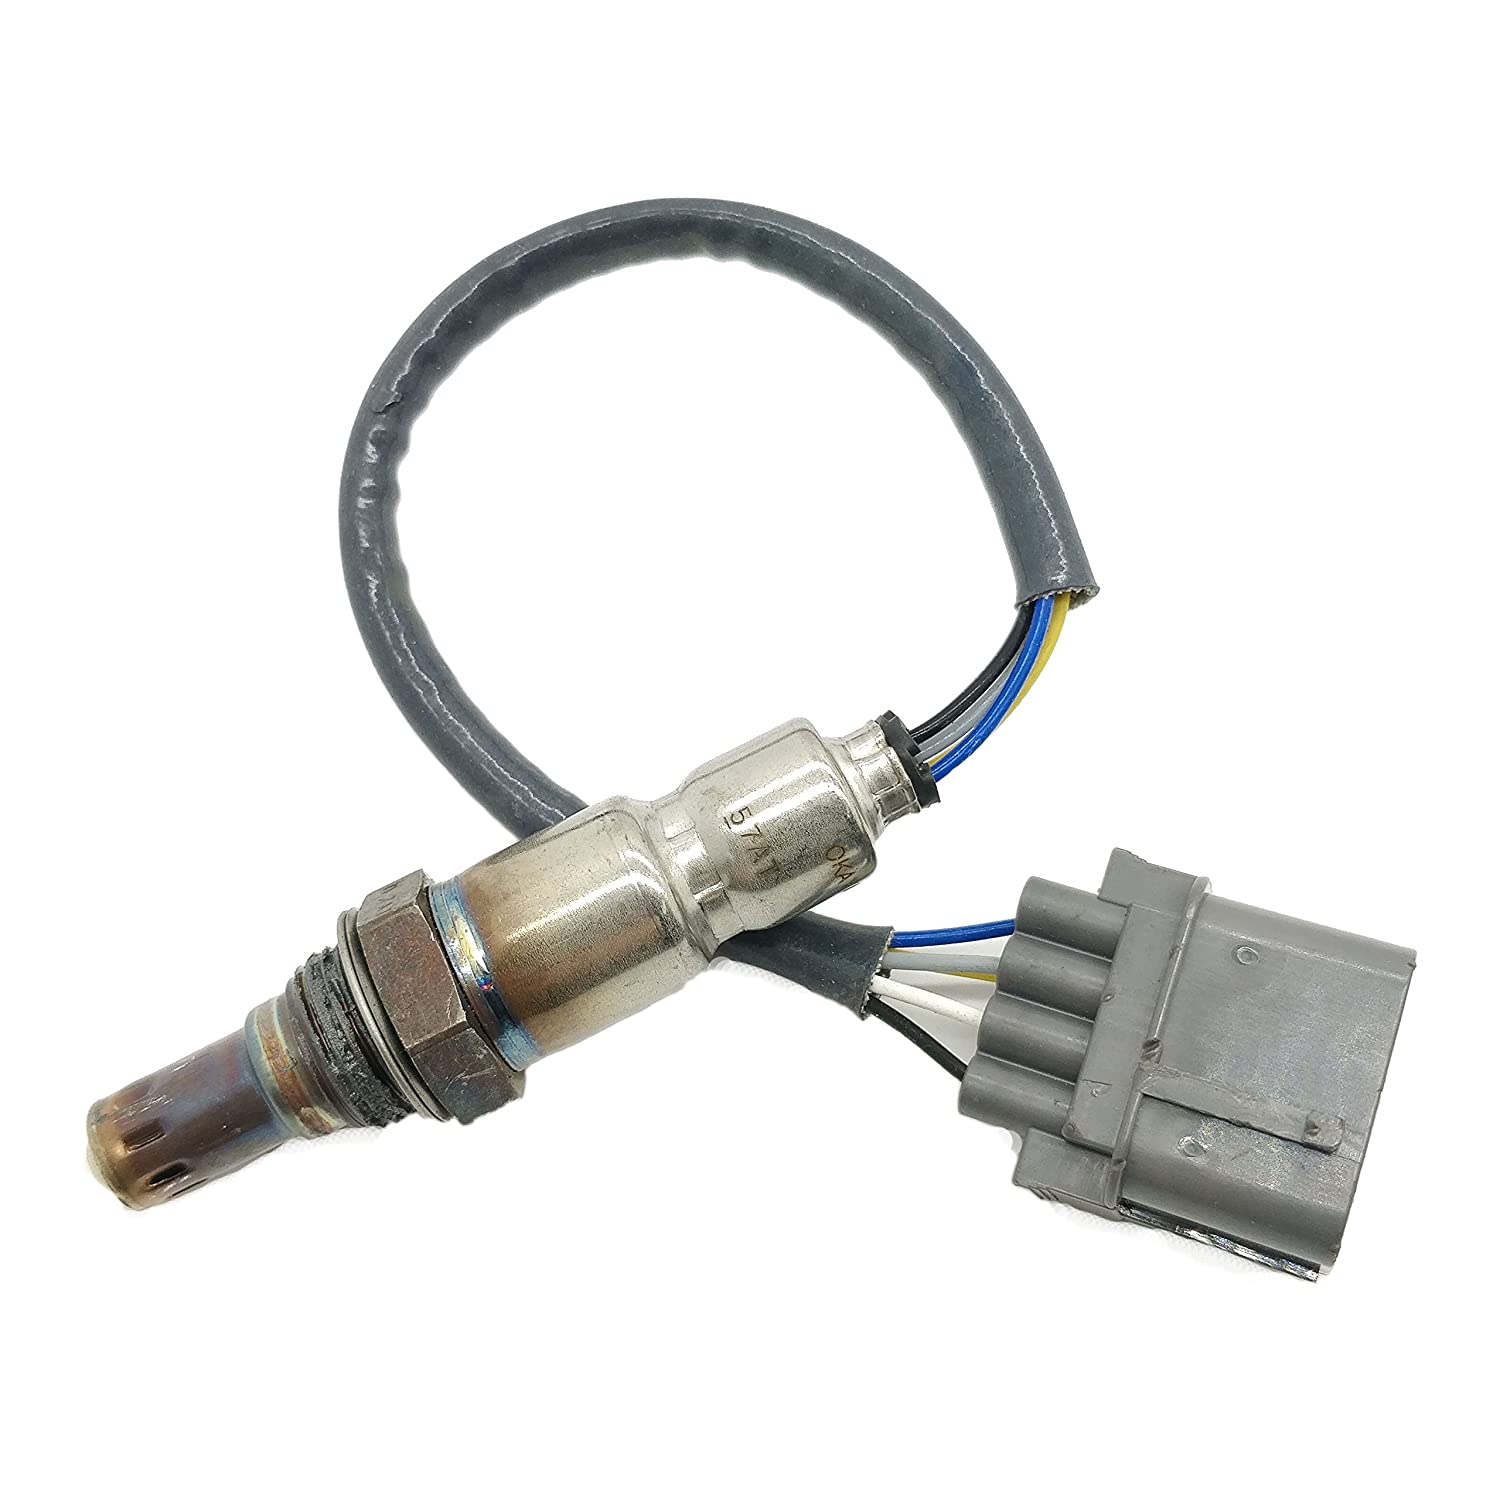 Nova Parts Sales 5 Wire Wideband Air Fuel Ratio Sensor 2005 Accord O2 Wiring For Honda 30l Ridgeline Pilot Odyssey Acura 35l Automotive